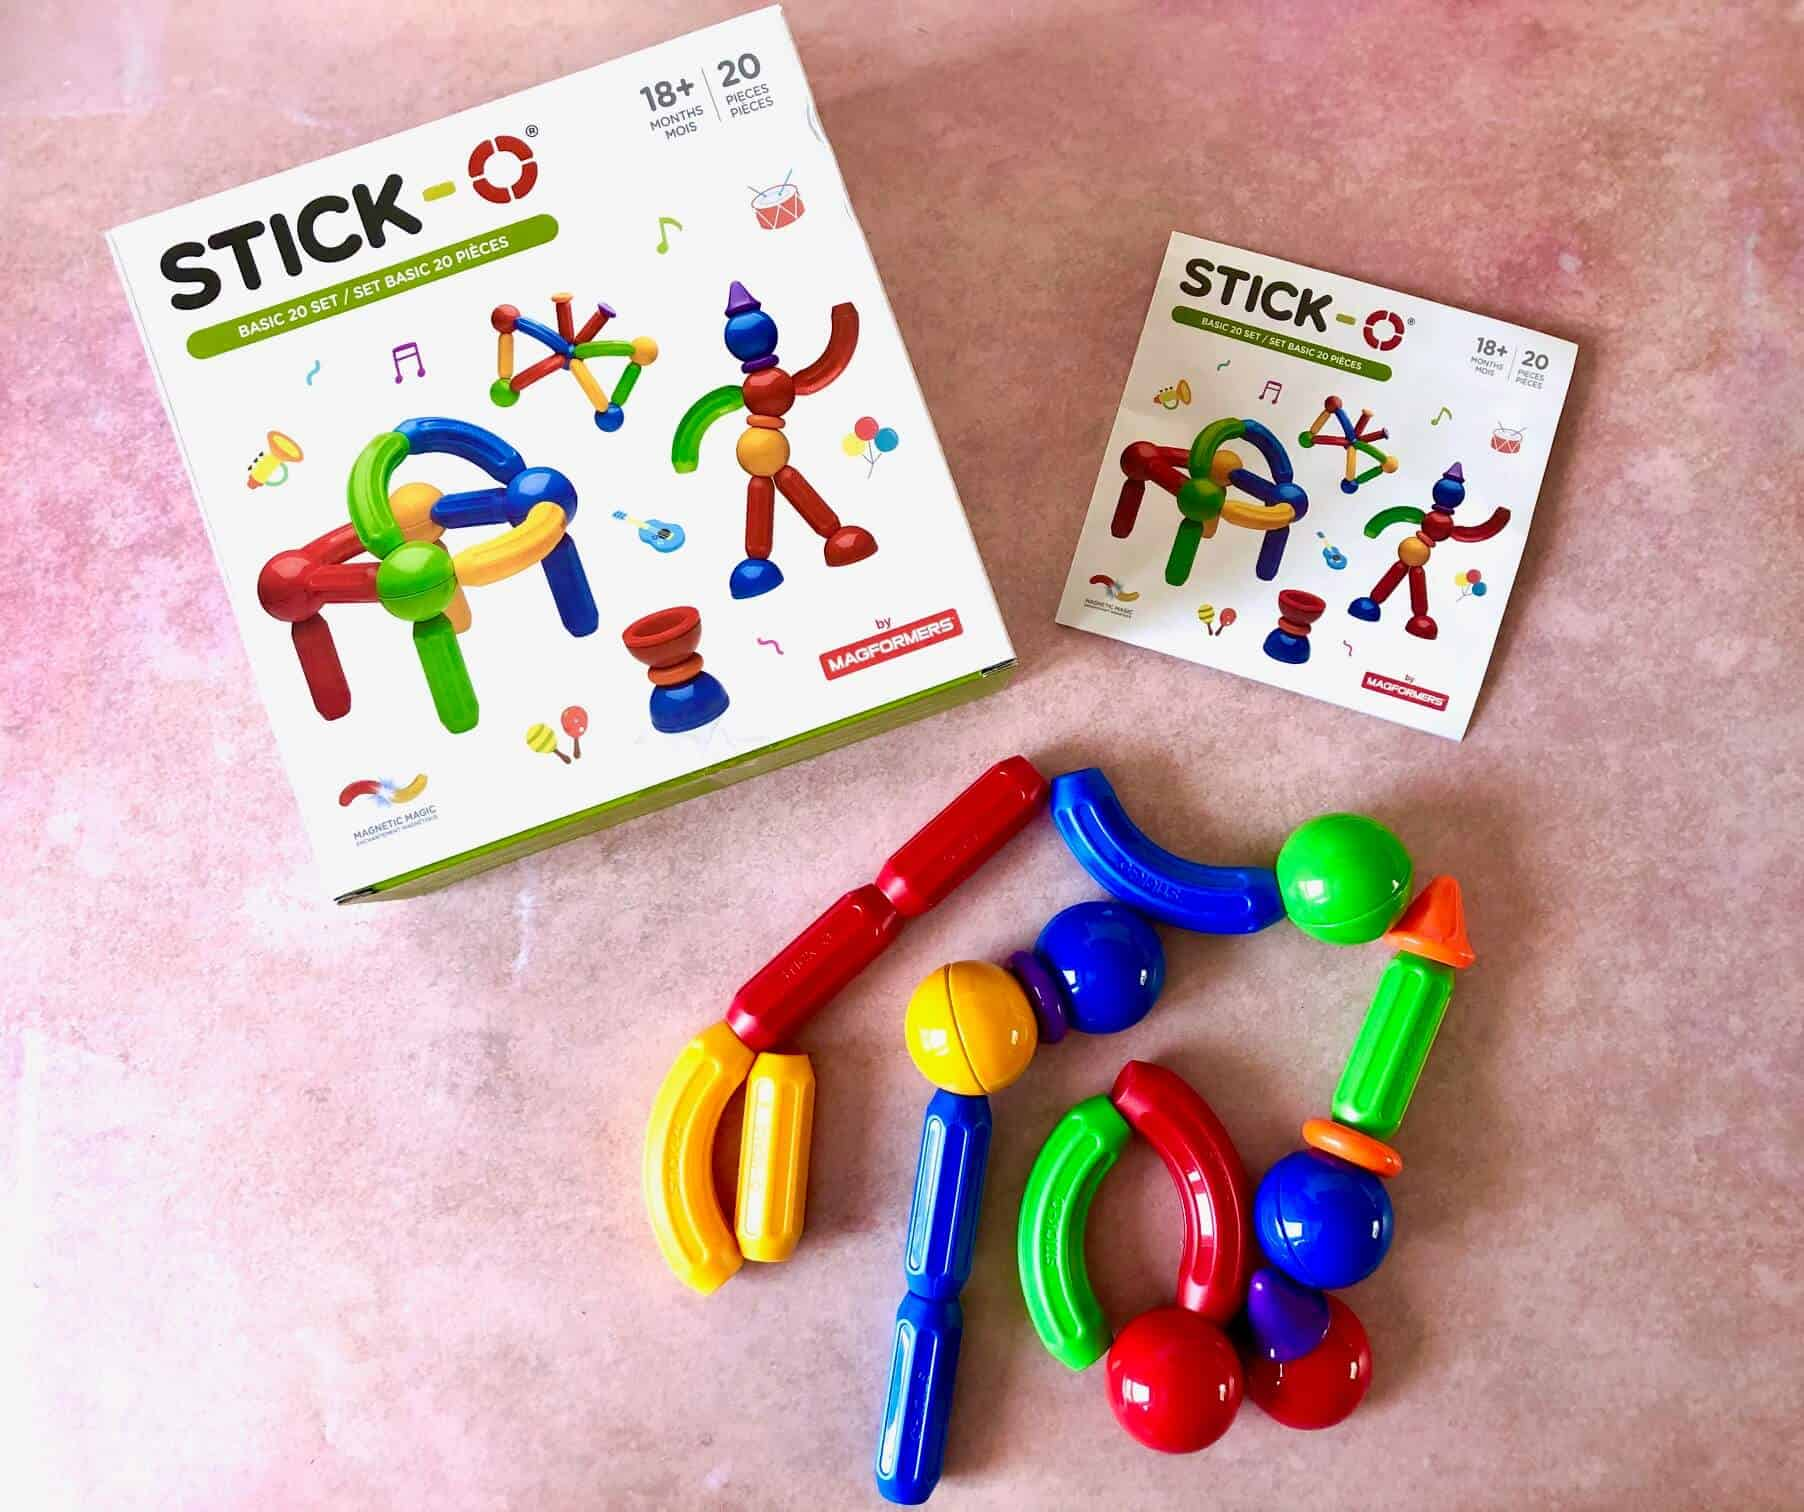 Stick-O Magnetic Construction For Toddlers and Preschoolers - stickman